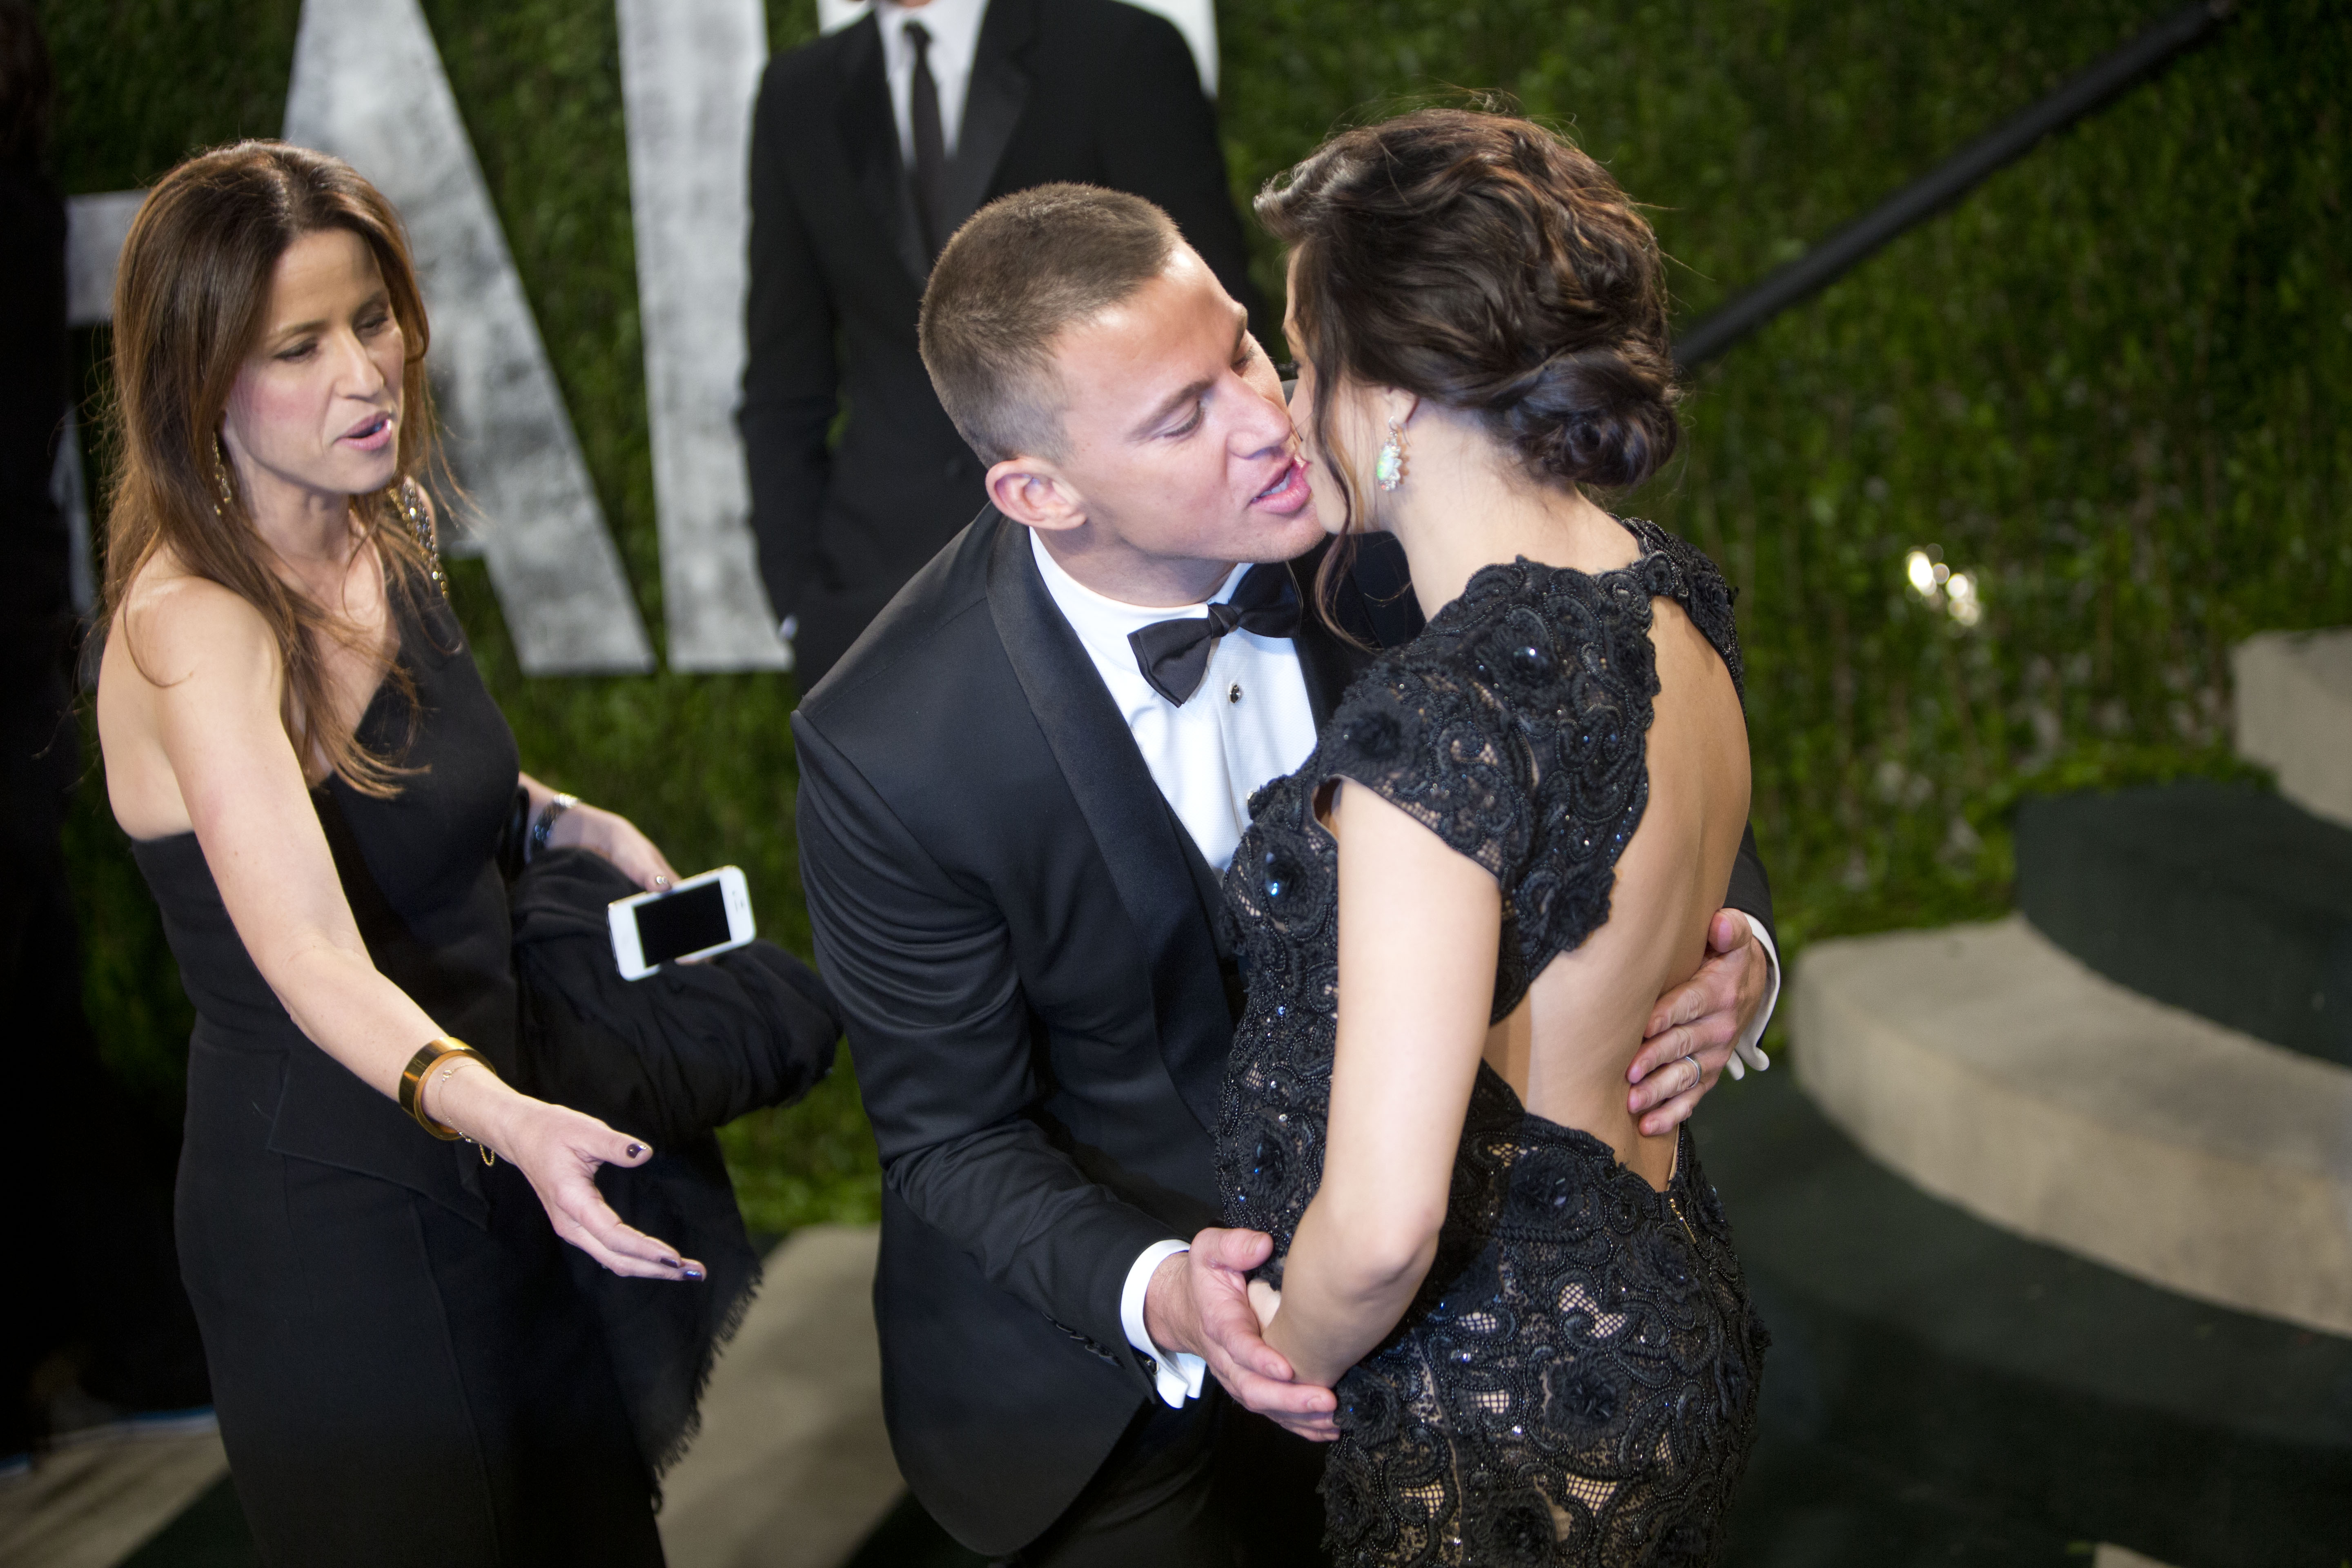 Channing Tatum kissed Jenna Dewan at the Vanity Fair Oscars party.